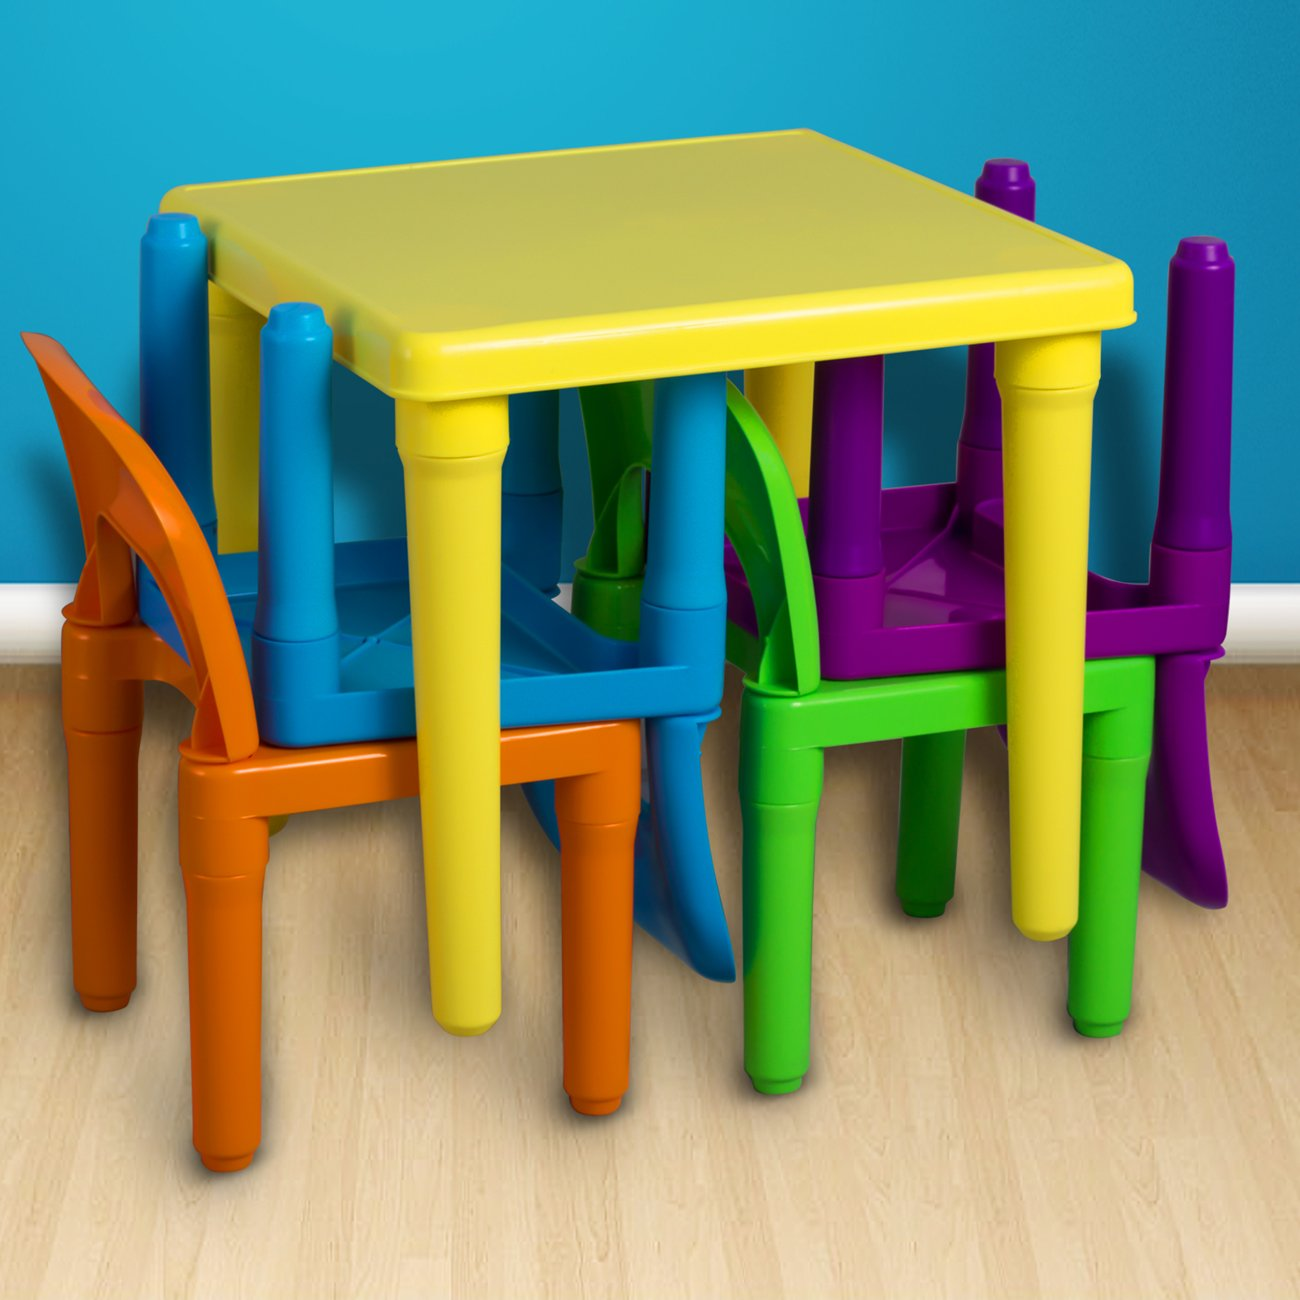 OxGord Kids Plastic Table and Chairs Set - Multi Colored Children Activity Table and Chairs for Playroom (Includes 1 Table and 4 Chairs) by OxGord (Image #3)